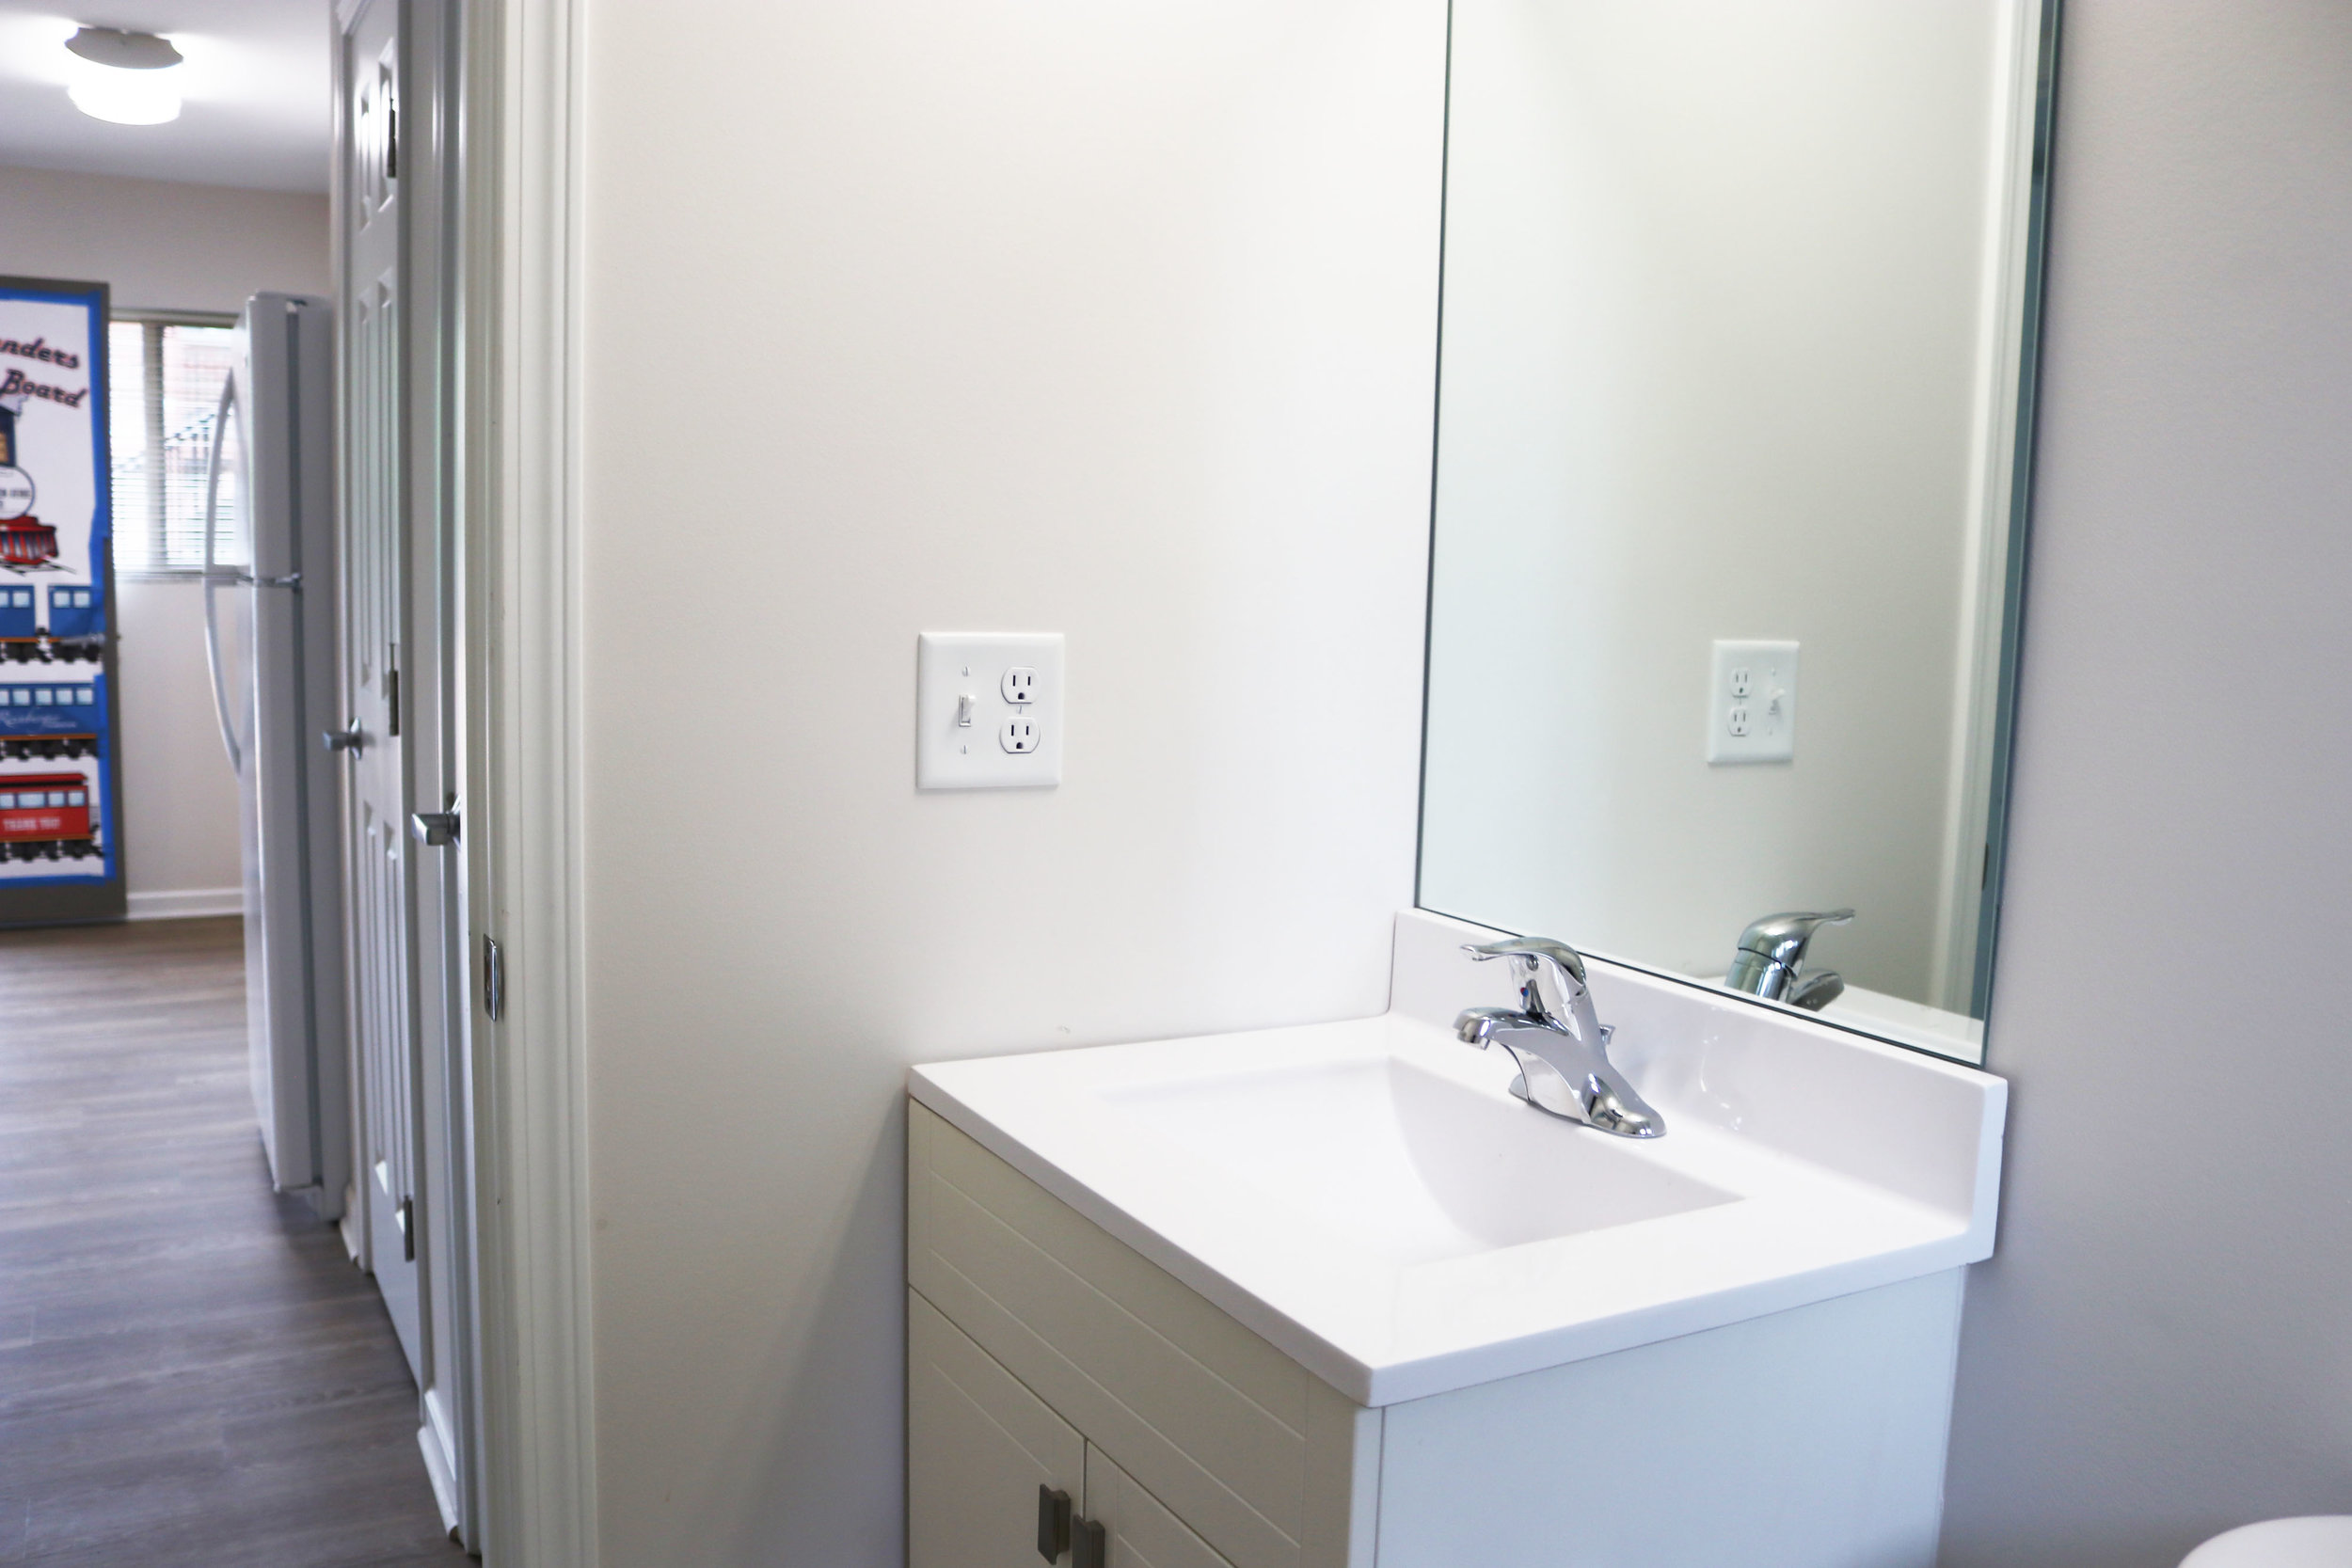 BATHROOM // AFTER:  New bright, fresh look and feel, with brand new vanity and toilet